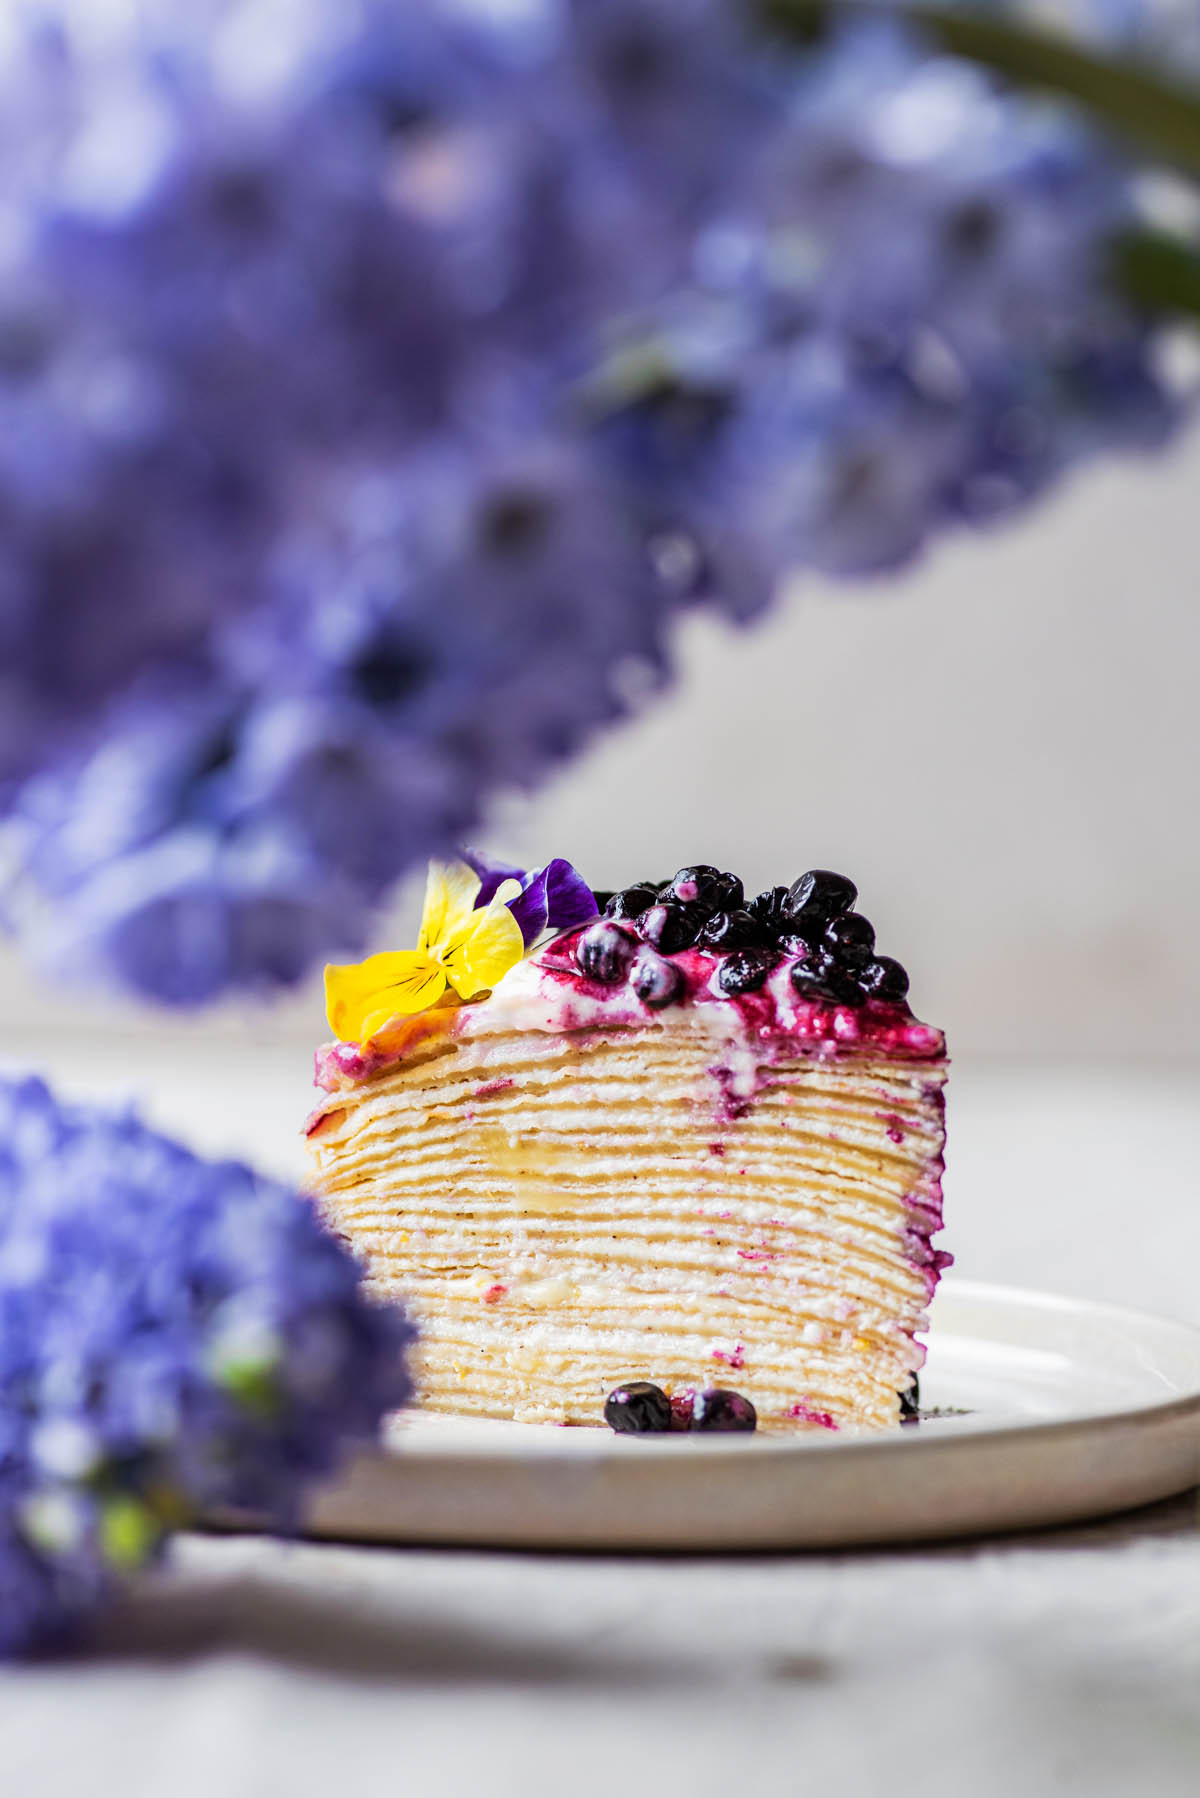 Slice of cake with flowers in forefront.